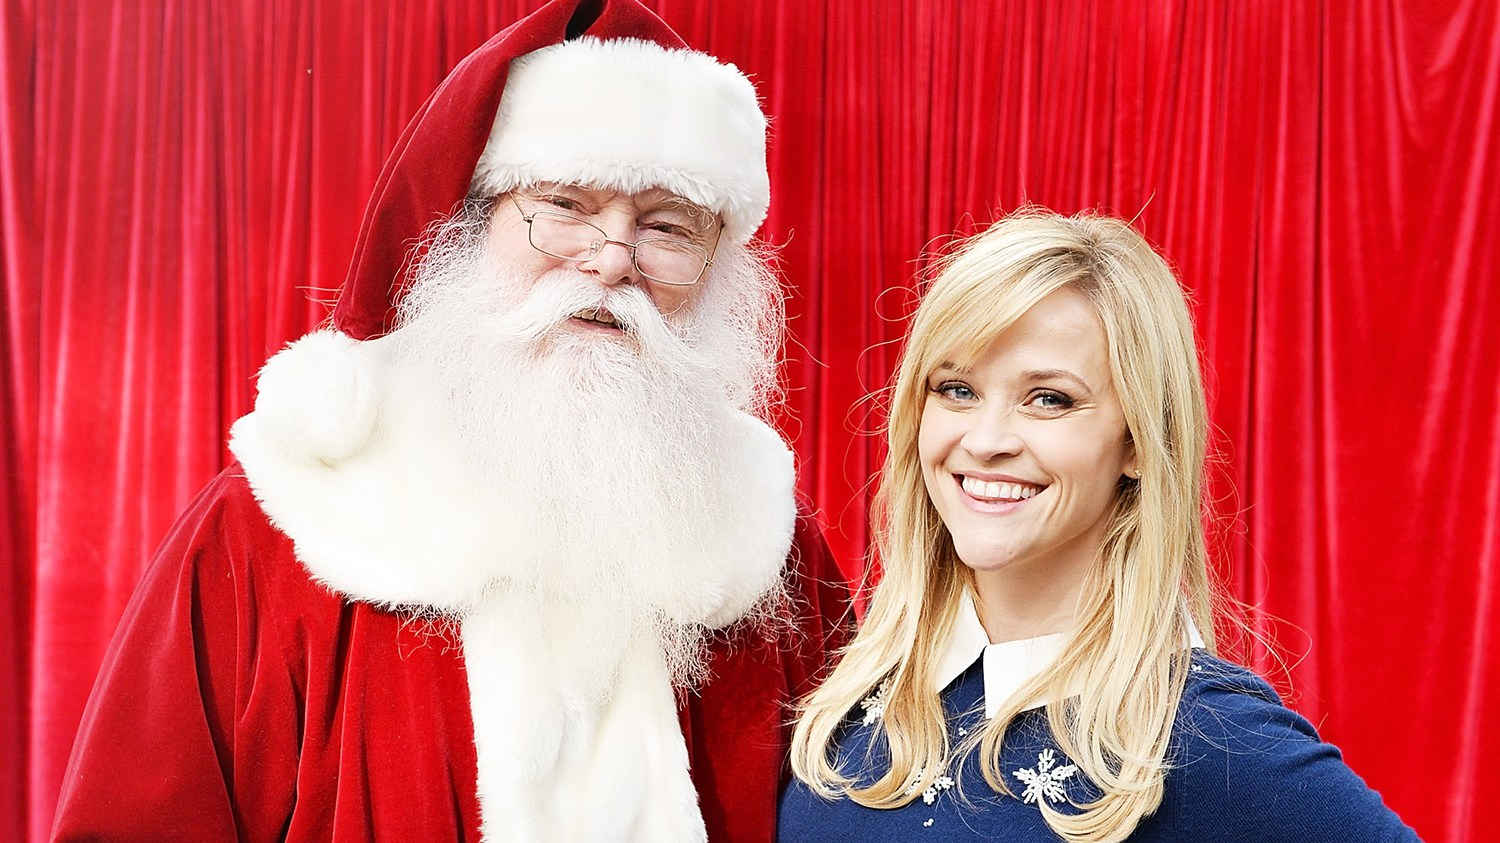 Santa Claus and Reese Witherspoon at The Grove in L.A.